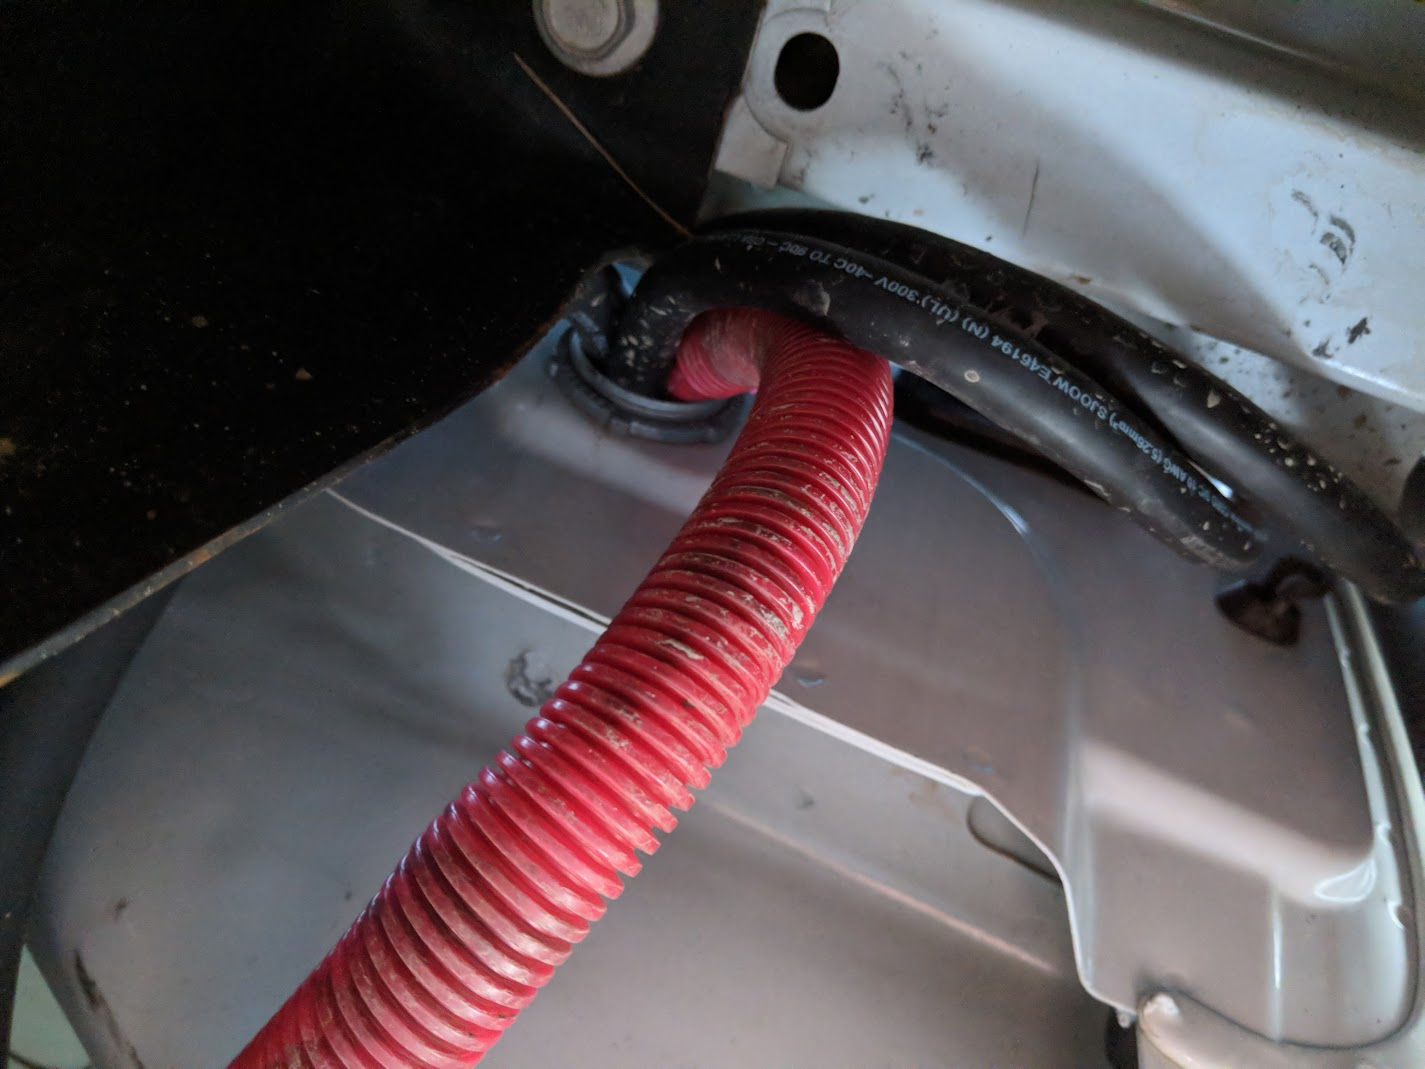 2017 Silverado Hd Large Inverter 3kw Install Chevy And Gmc Wiring Loom Home Depot Update The Looks A Lot Cleaner With These Maxliner Floor Mats Covering Cables Routed Under Back Seat